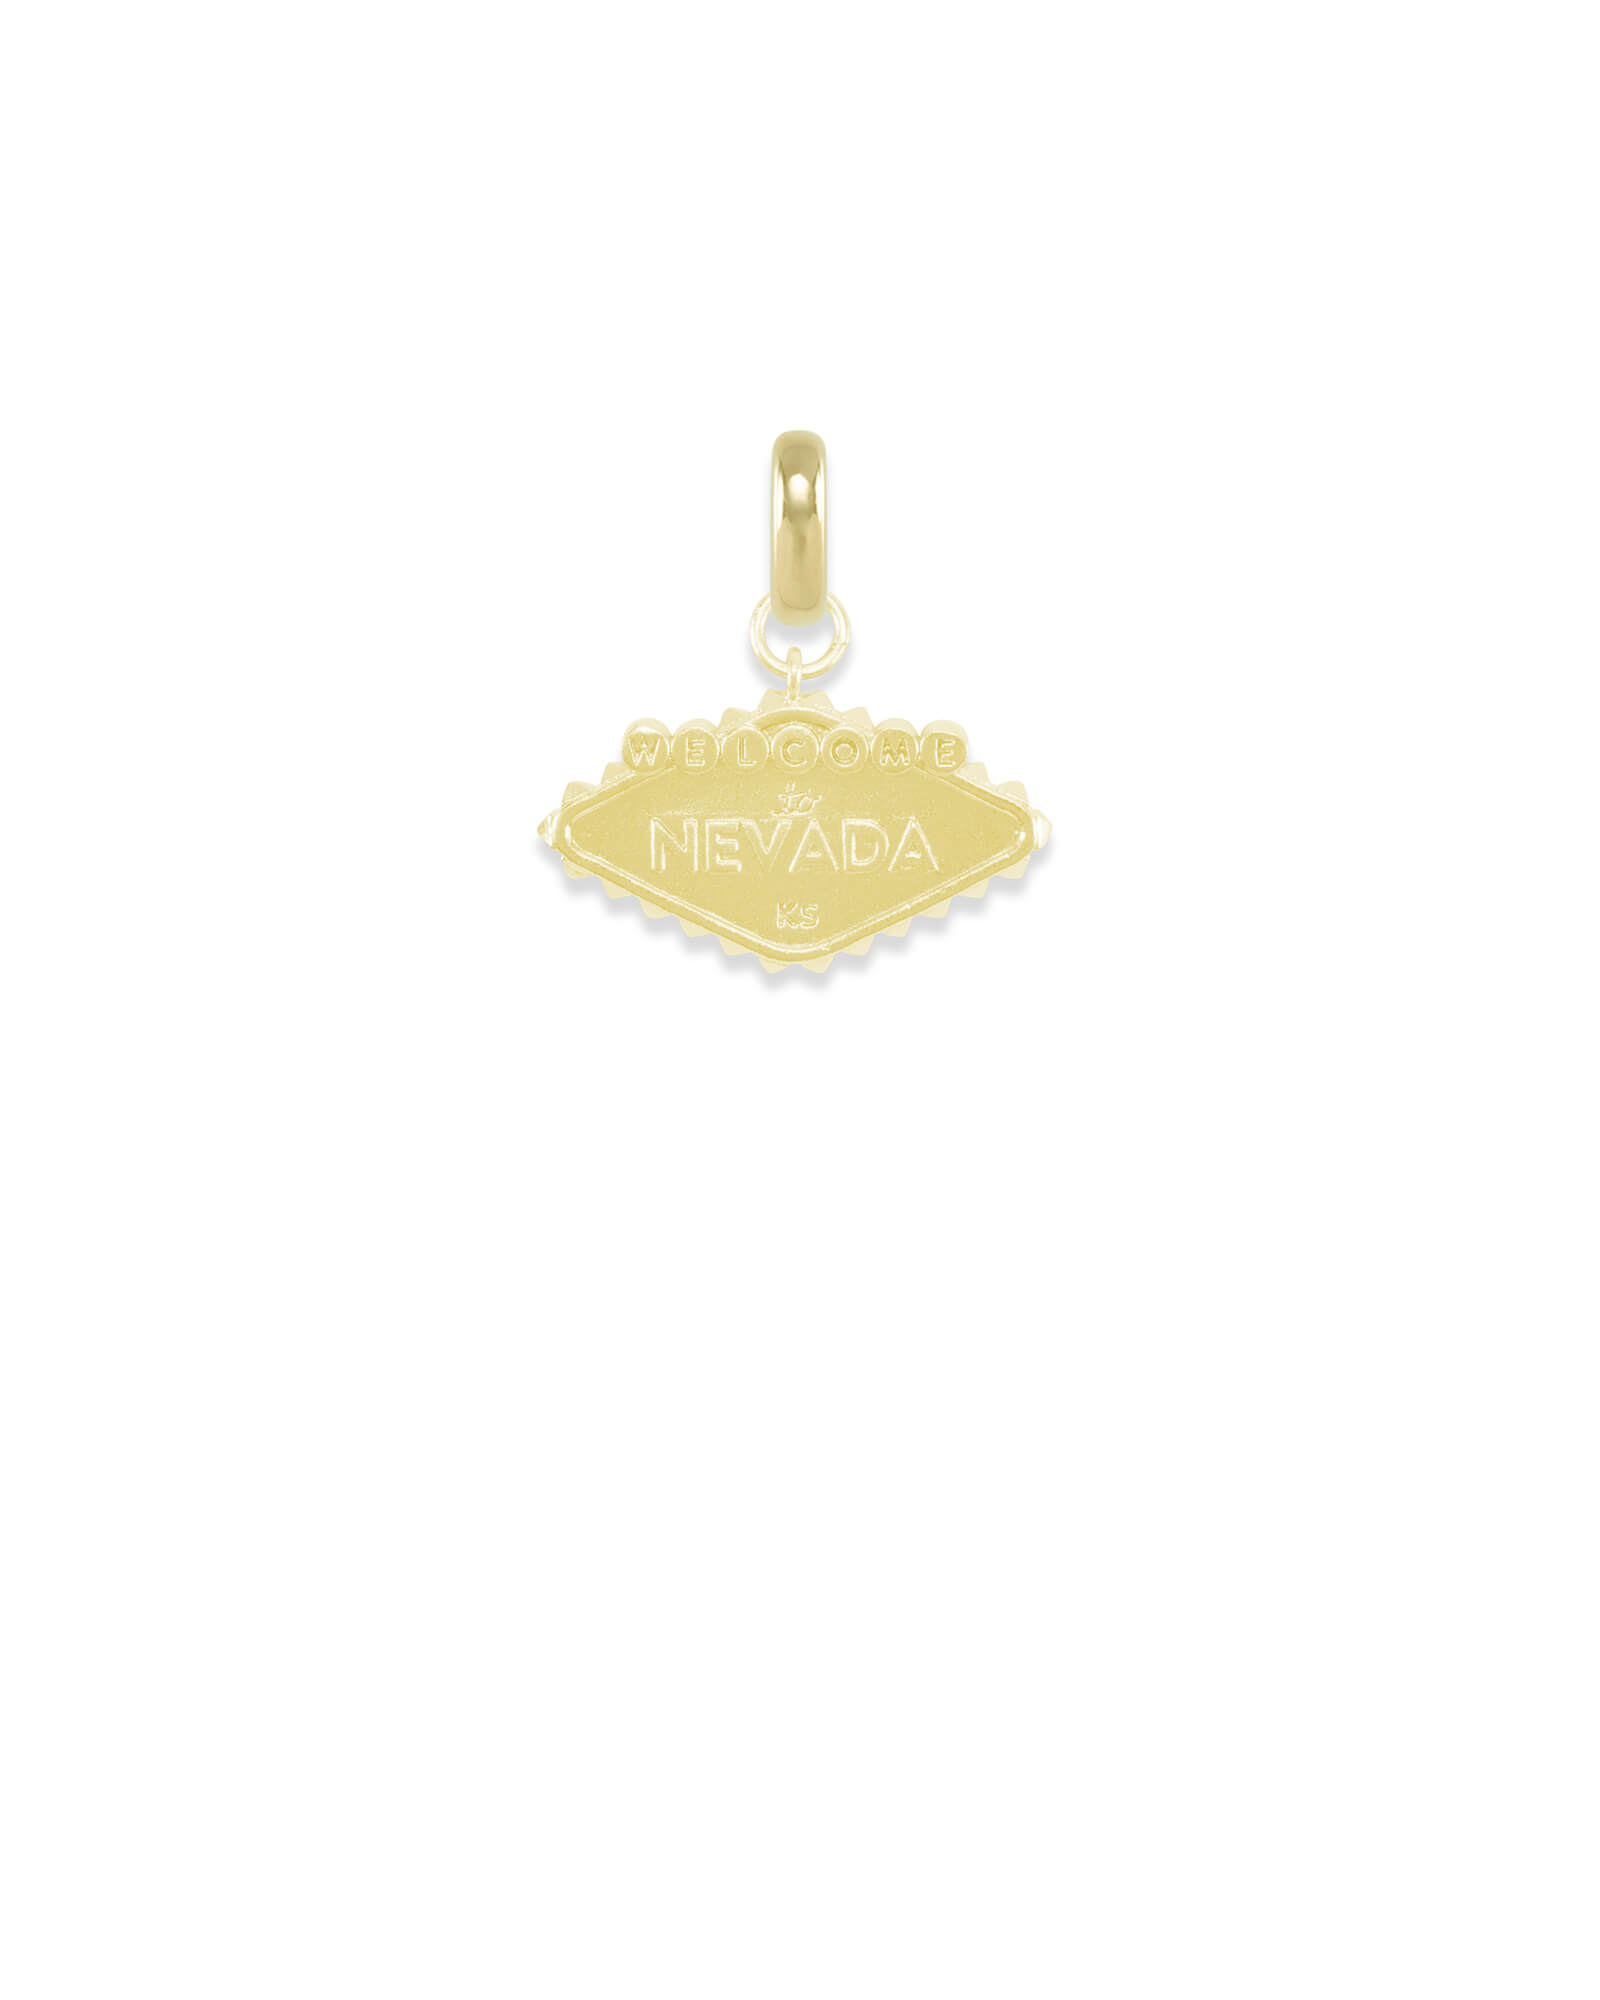 Nevada Las Vegas Sign Charm in Gold